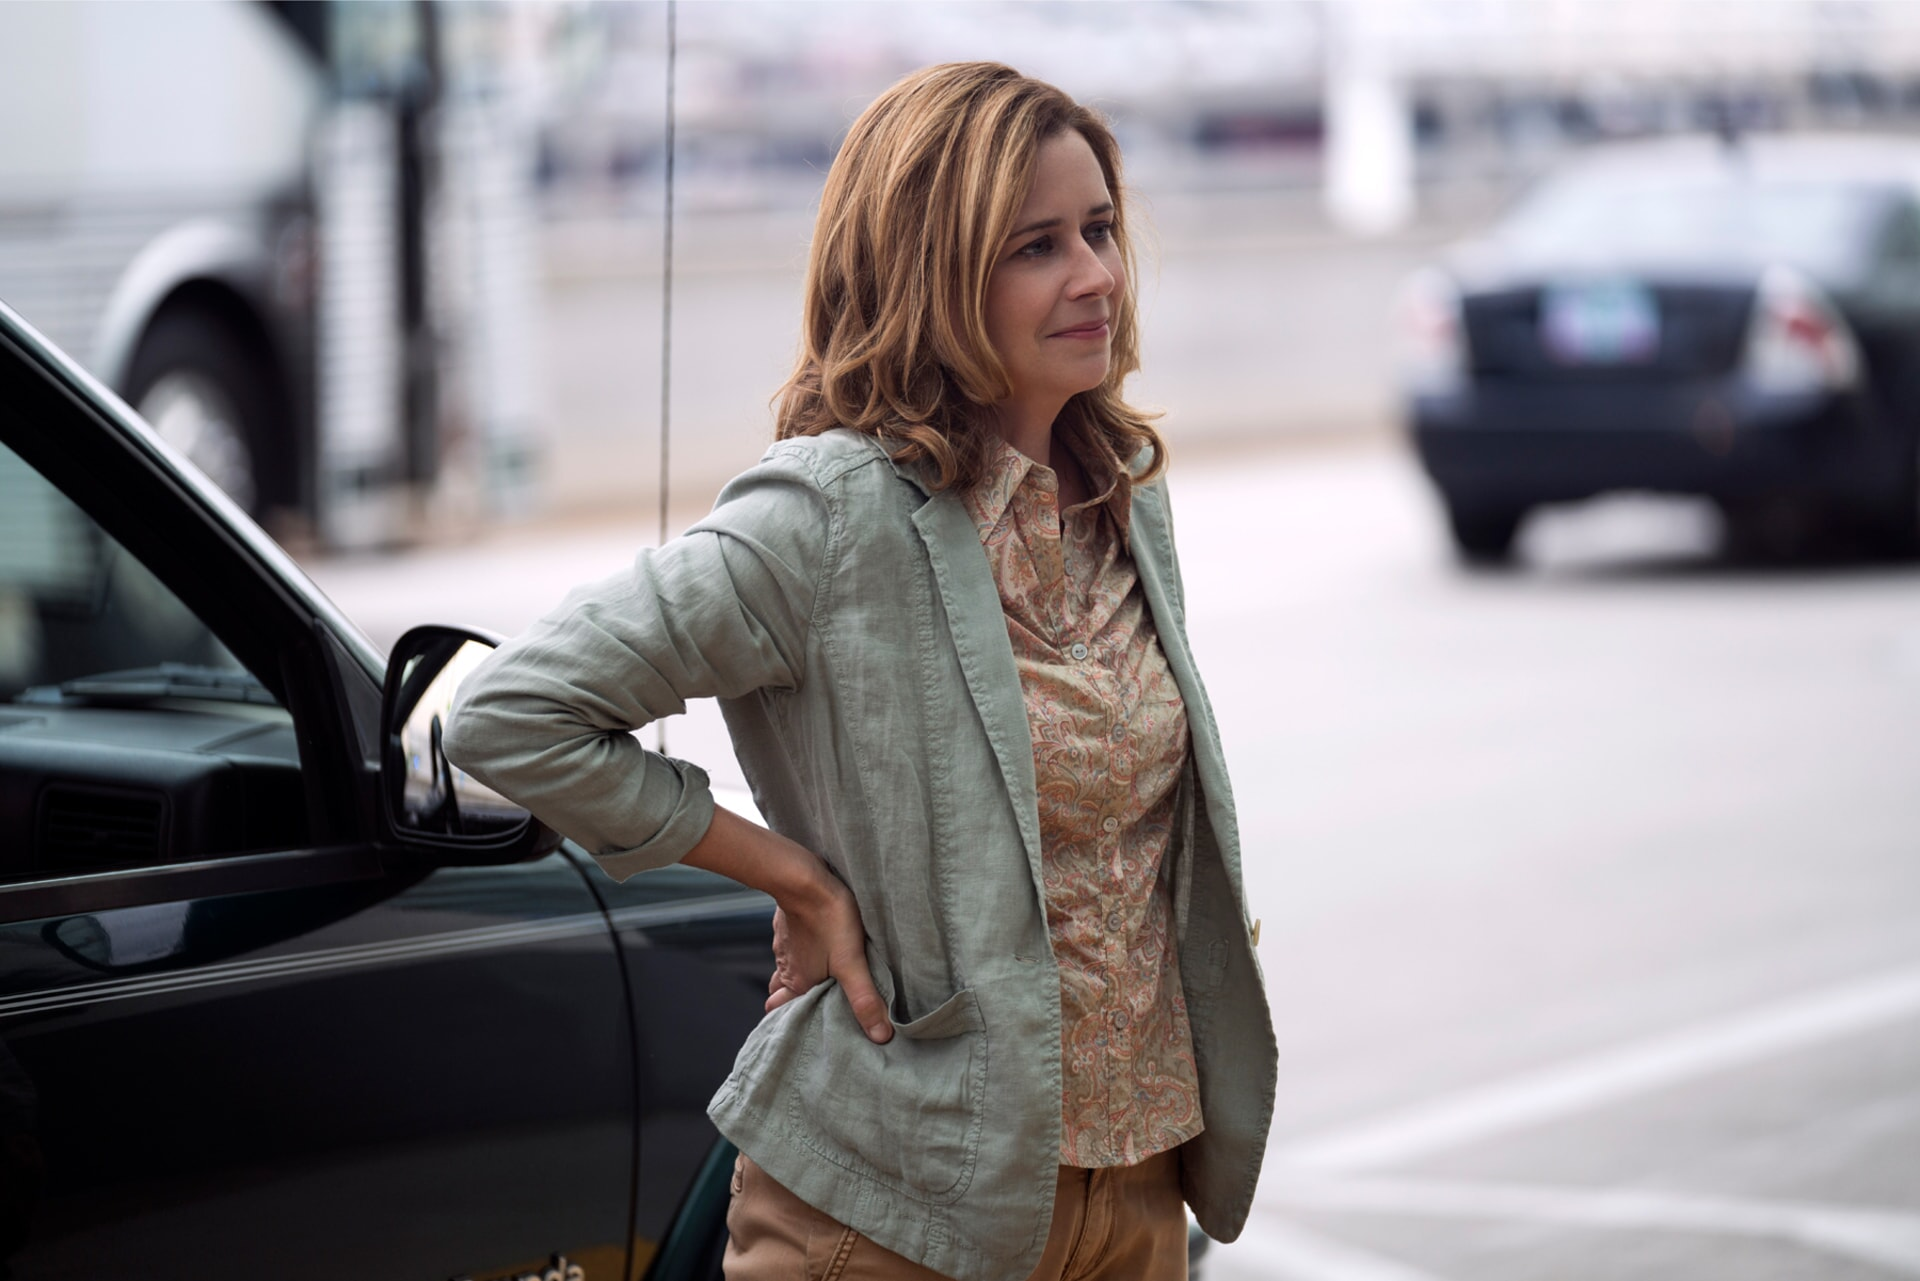 """JENNA FISCHER as Heidi in Warner Bros. Pictures' and Village Roadshow Pictures' """"THE 15:17 TO PARIS,"""" a Warner Bros. Pictures release."""